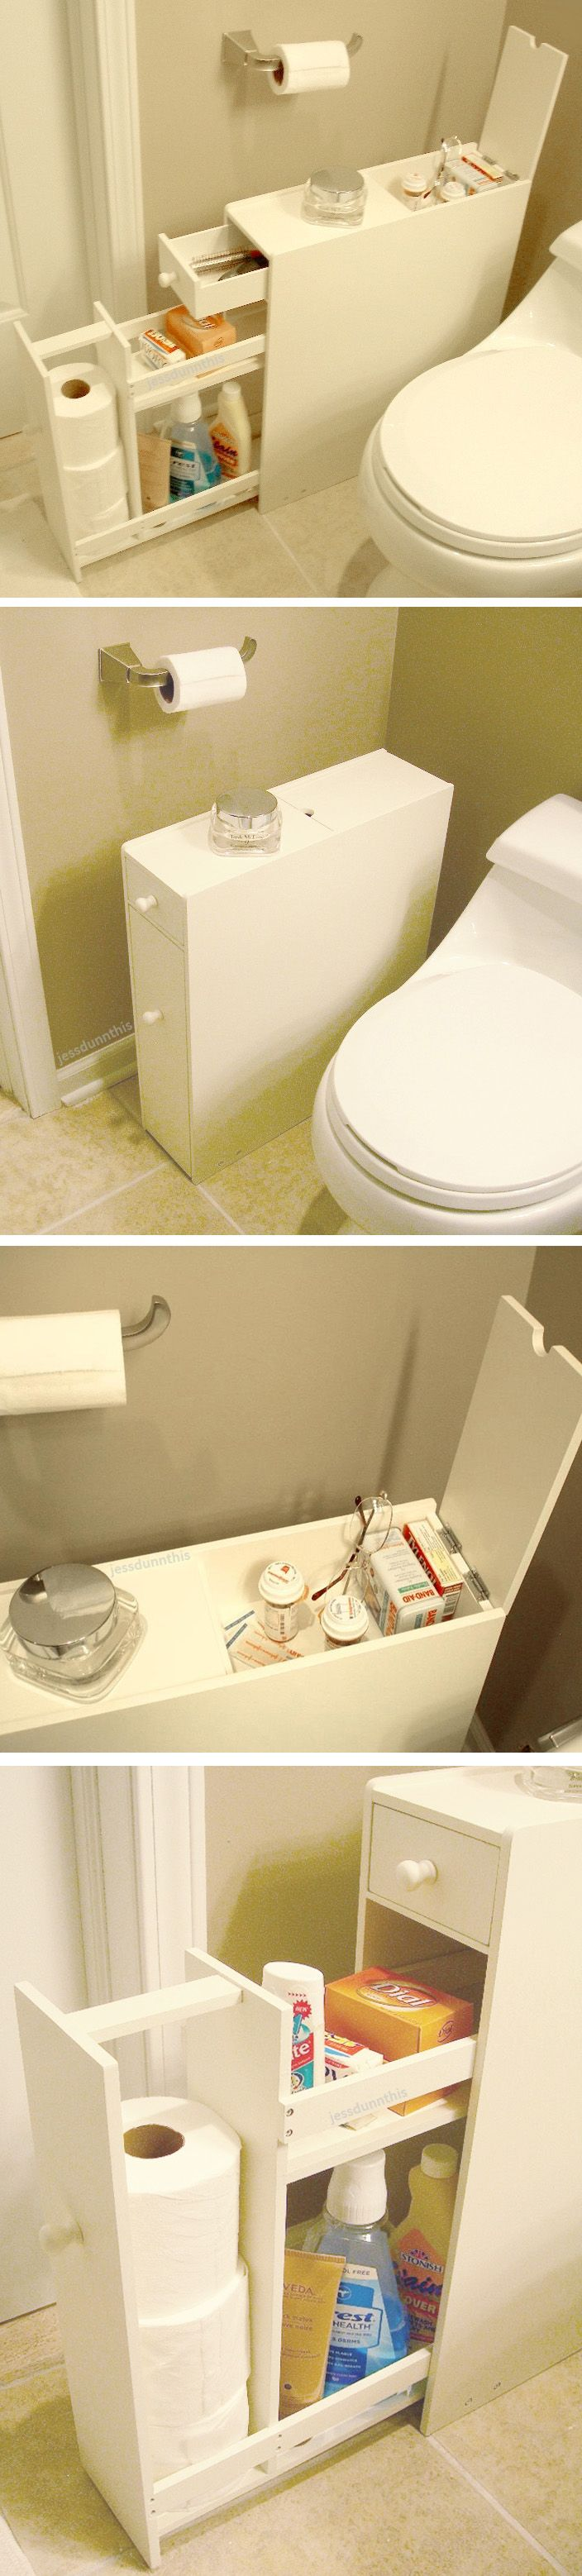 Bathroom Space Saver Floor Cabinet // Stores Up To 12 Rolls Of Toilet Paper  And Fits Beside The Closet   Brilliant Idea!